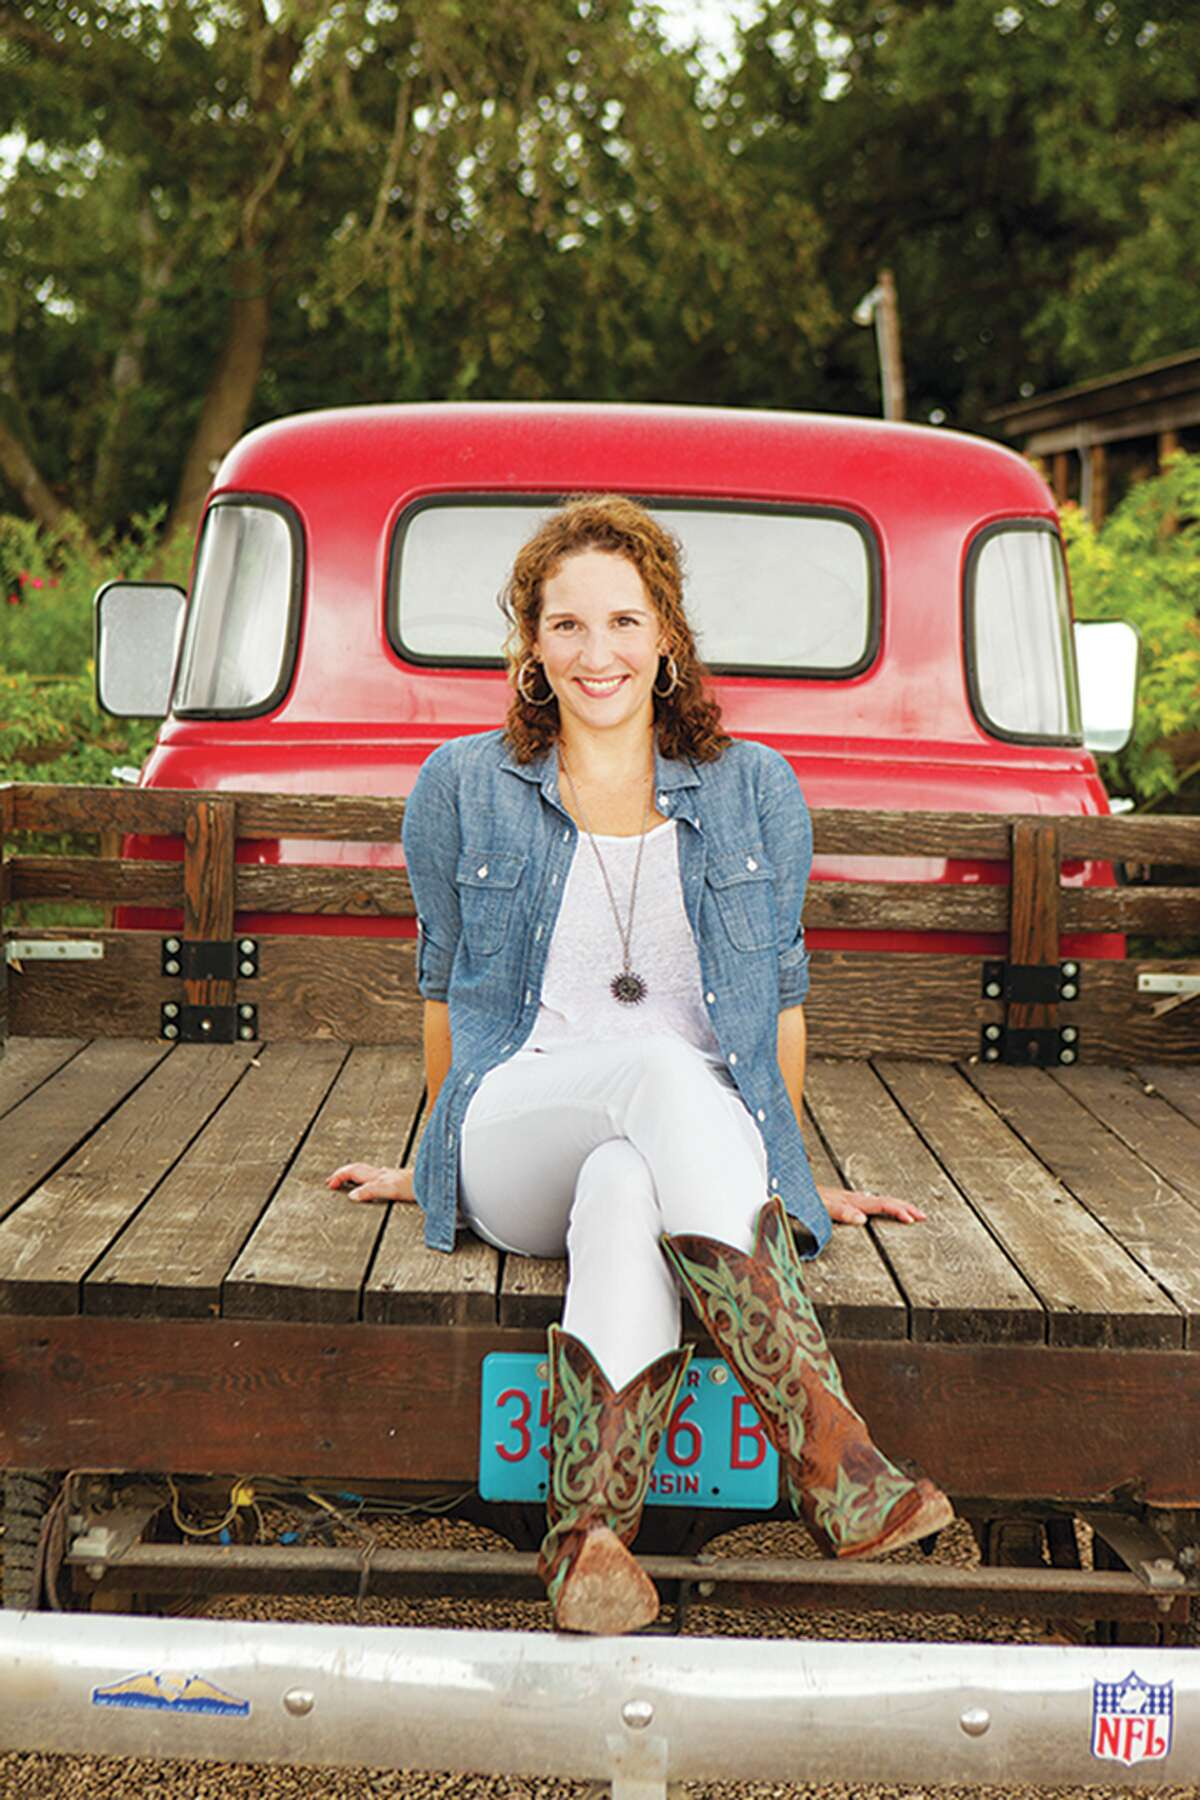 """Jessica Dupuy, a fourth-generation Texan, is the author of """"United Tastes of Texas: Authentic Recipes from All Corners of the Lone Star State"""" (Oxmooor House, $24.95)."""